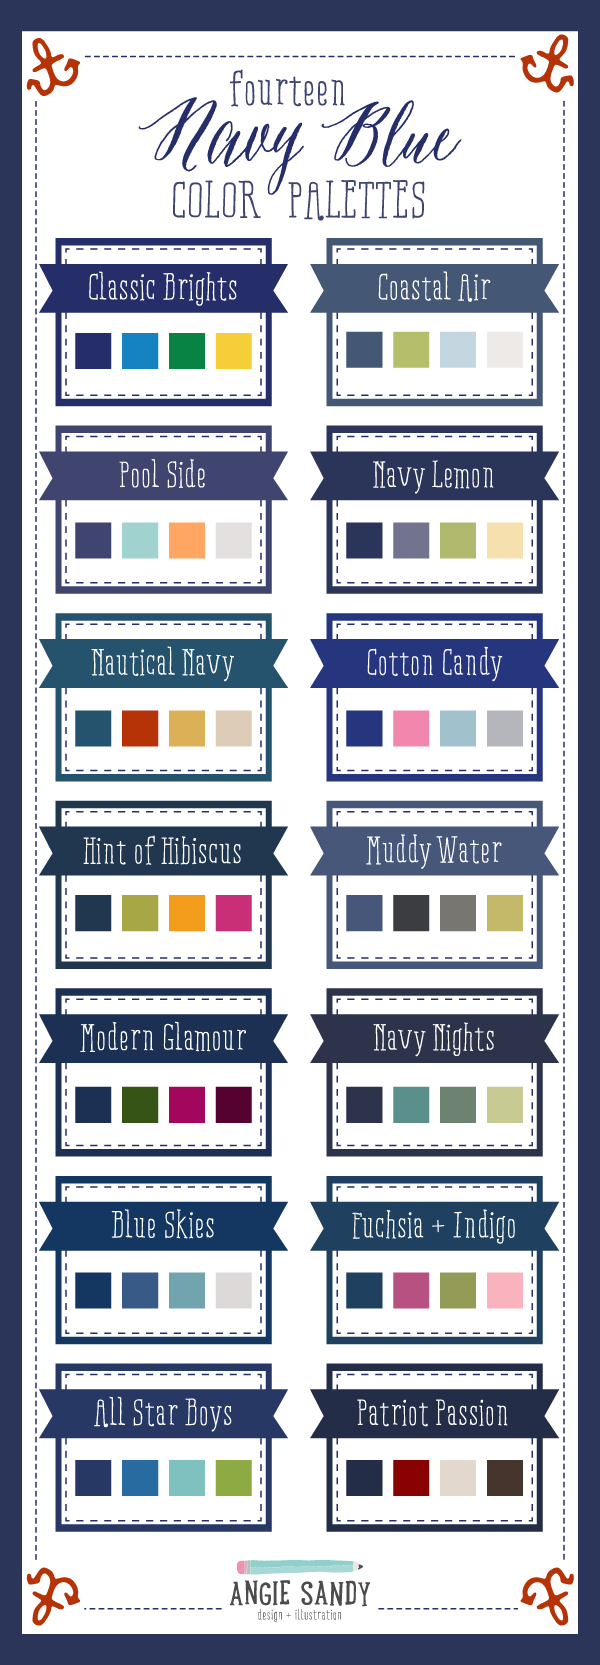 14 Navy Blue Color Palettes | Angie Sandy Art Licensing & Design #angiesandy #colorpalettes #colorcrush #navy